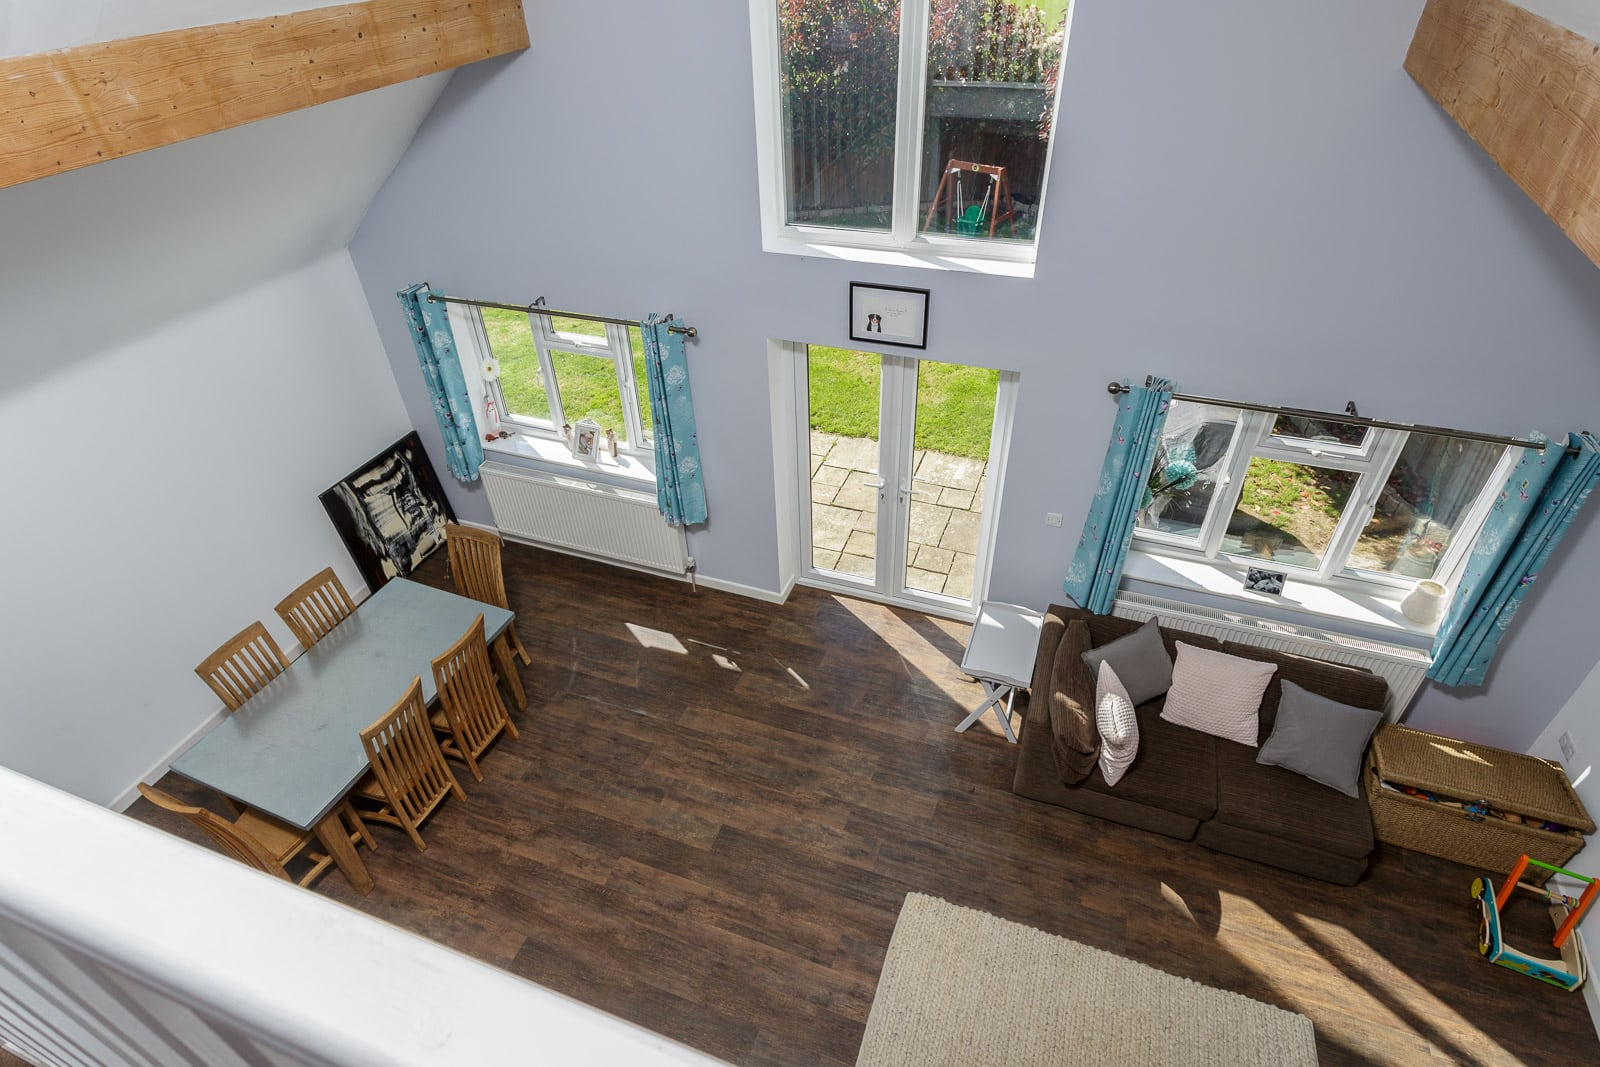 View looking down into spacious living area from first floor balcony of a refurbishment project